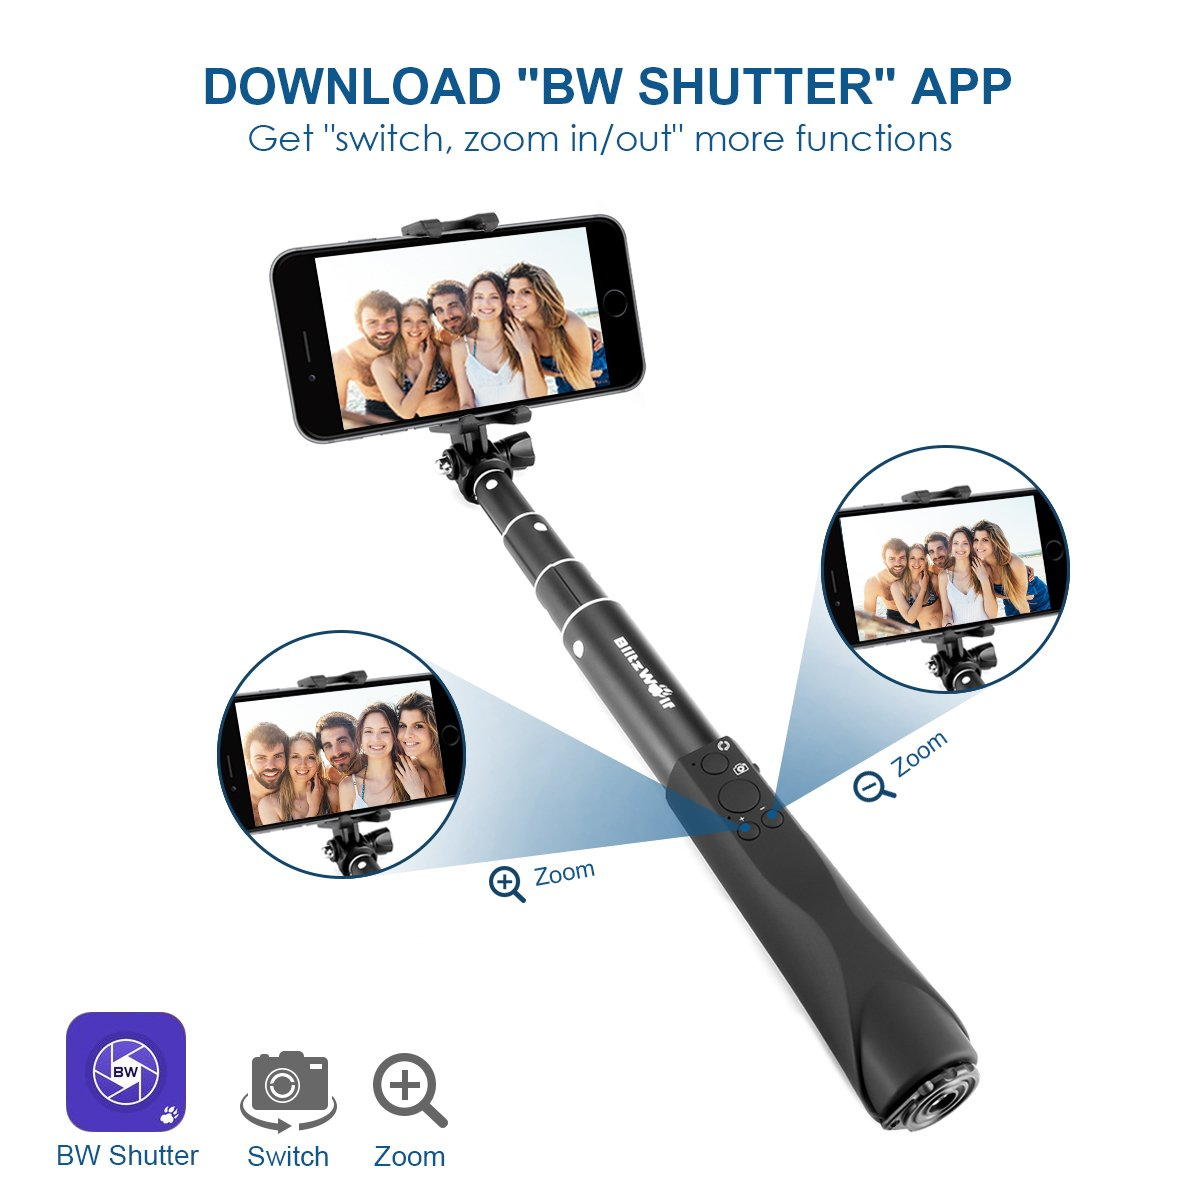 Bluetooth Selfie Stick, BlitzWolf Built-in Remote Shutter Self-Portrait Extendable Wireless Monopod with Zoom and Camera Switching Button for iPhone SE/7/7 Plus/6S Plus/6S/6/5S/5C/5, Samsung Galaxy S5/S6/S6 Edge, Note4/5, LG G2/3, HTC, Sony